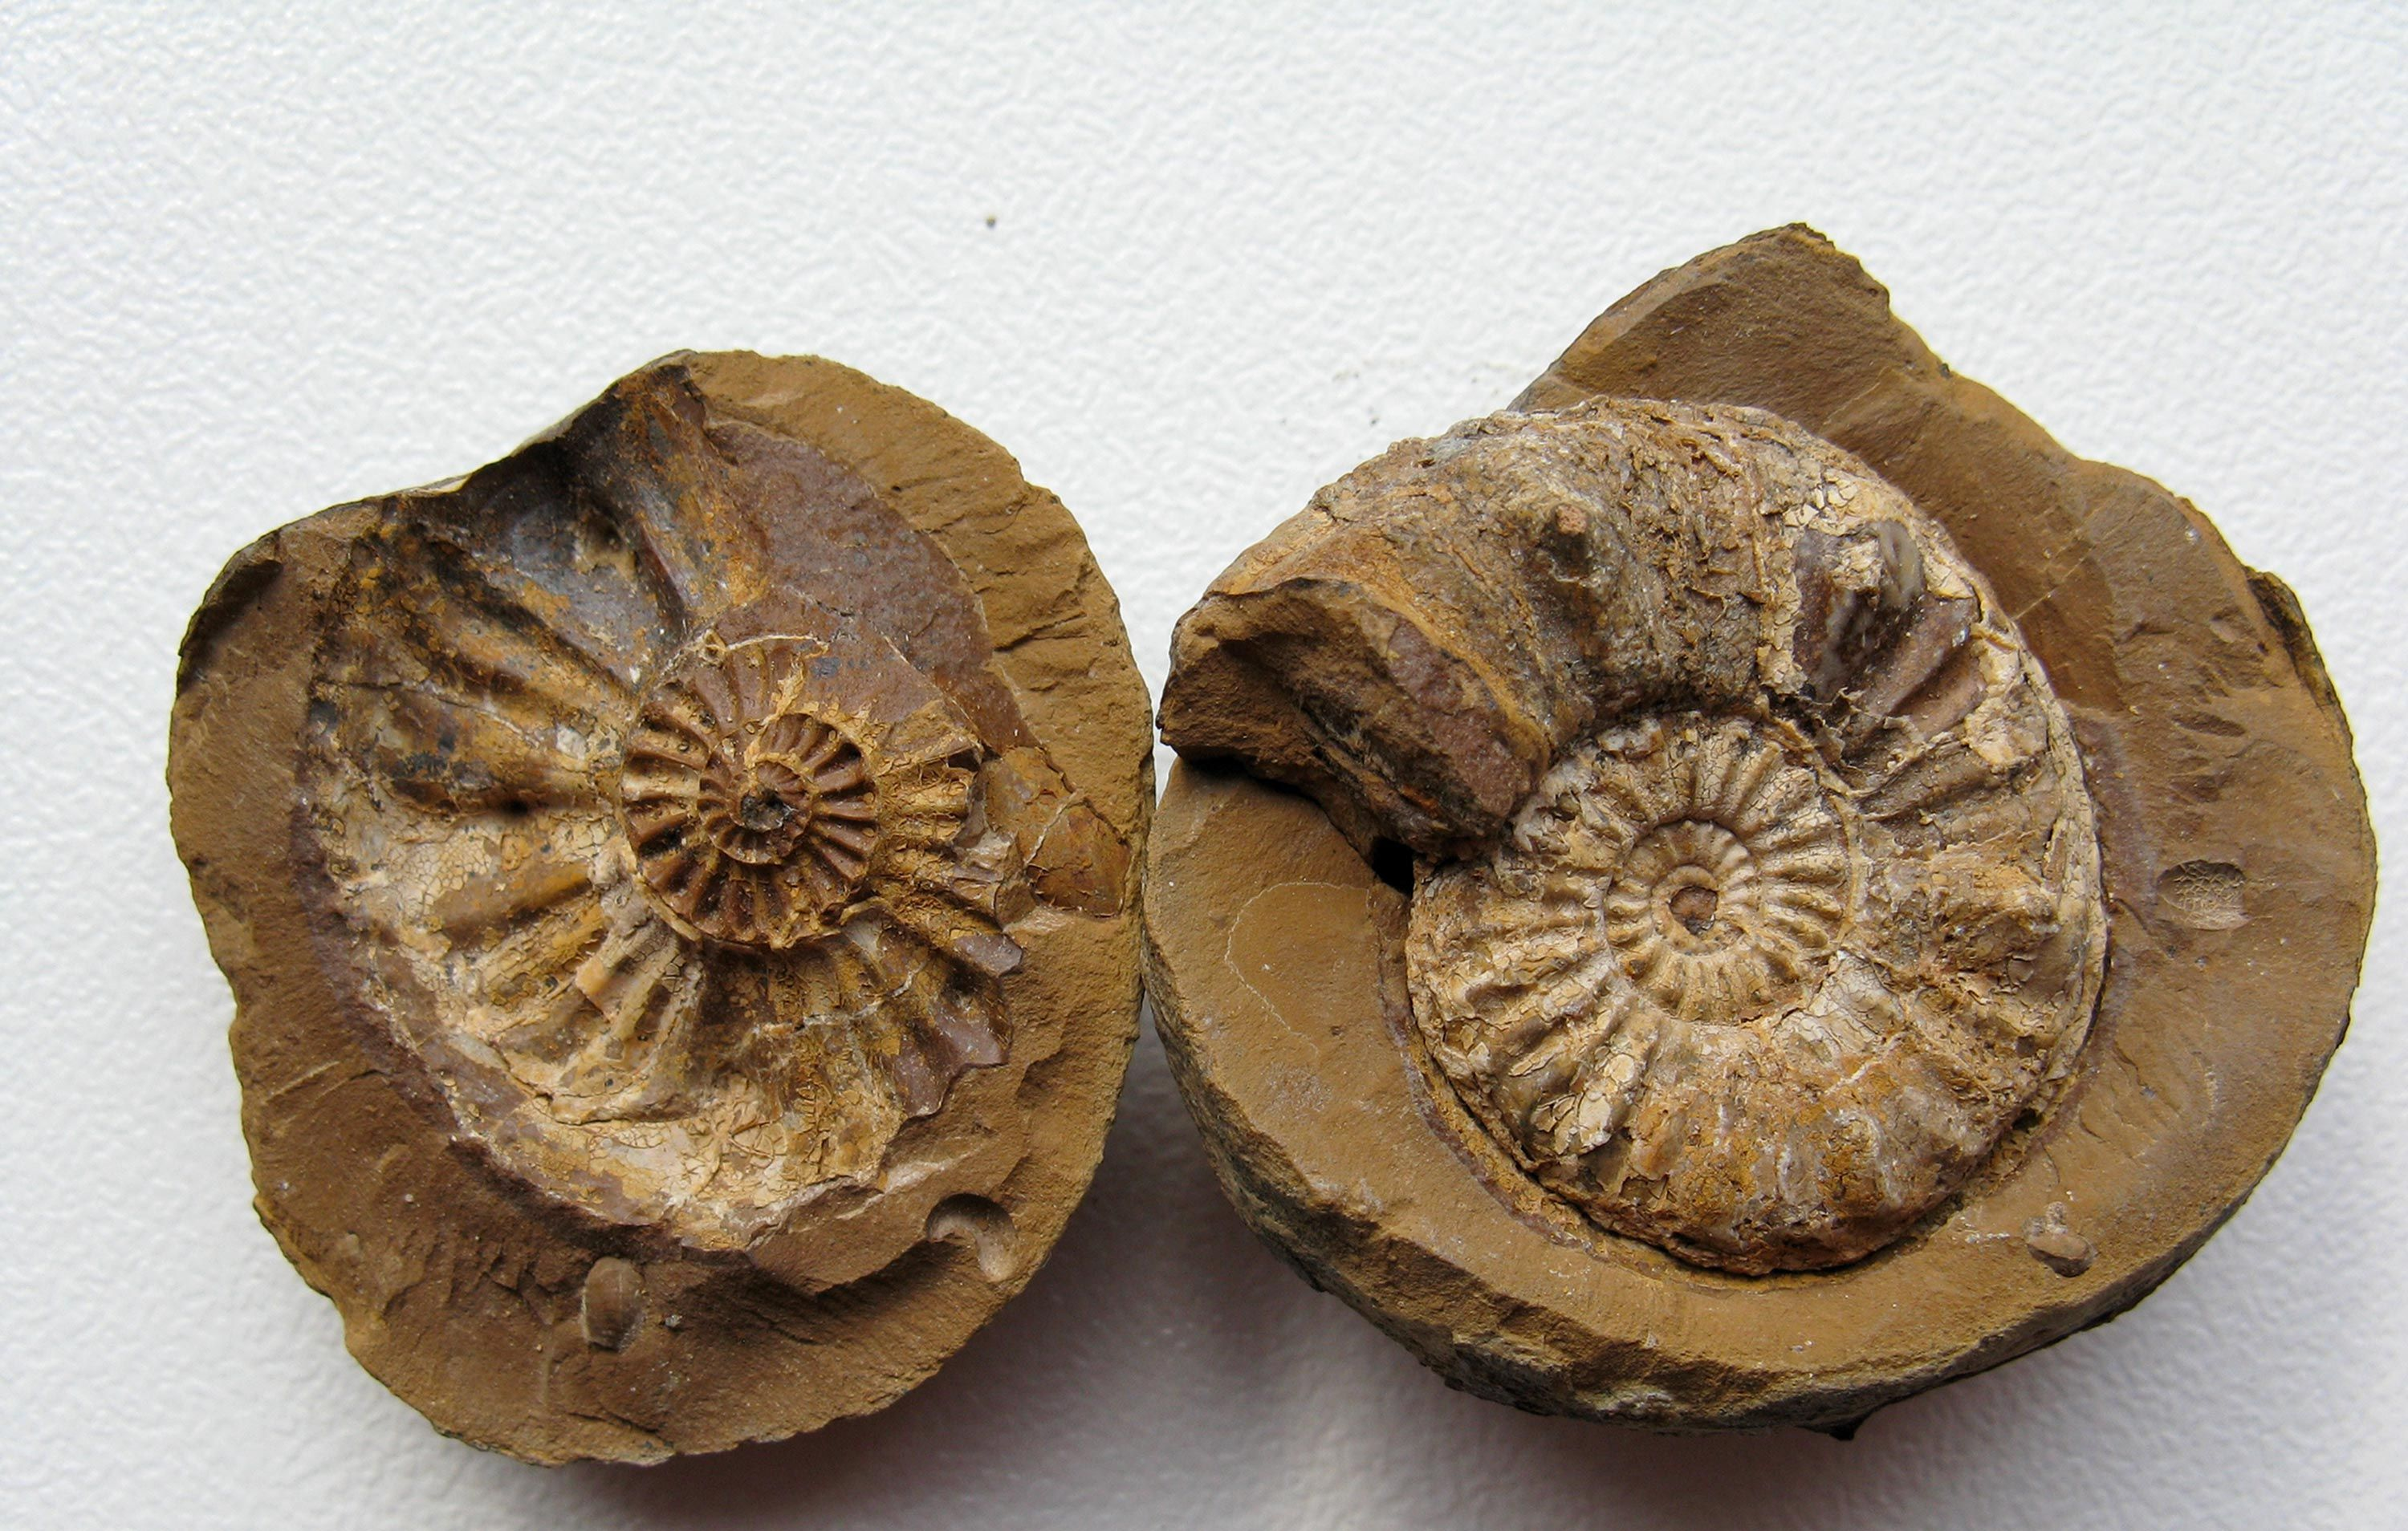 <stamp theme='svt-green1'>Doc. 5</stamp> Un fossile d'ammonite.